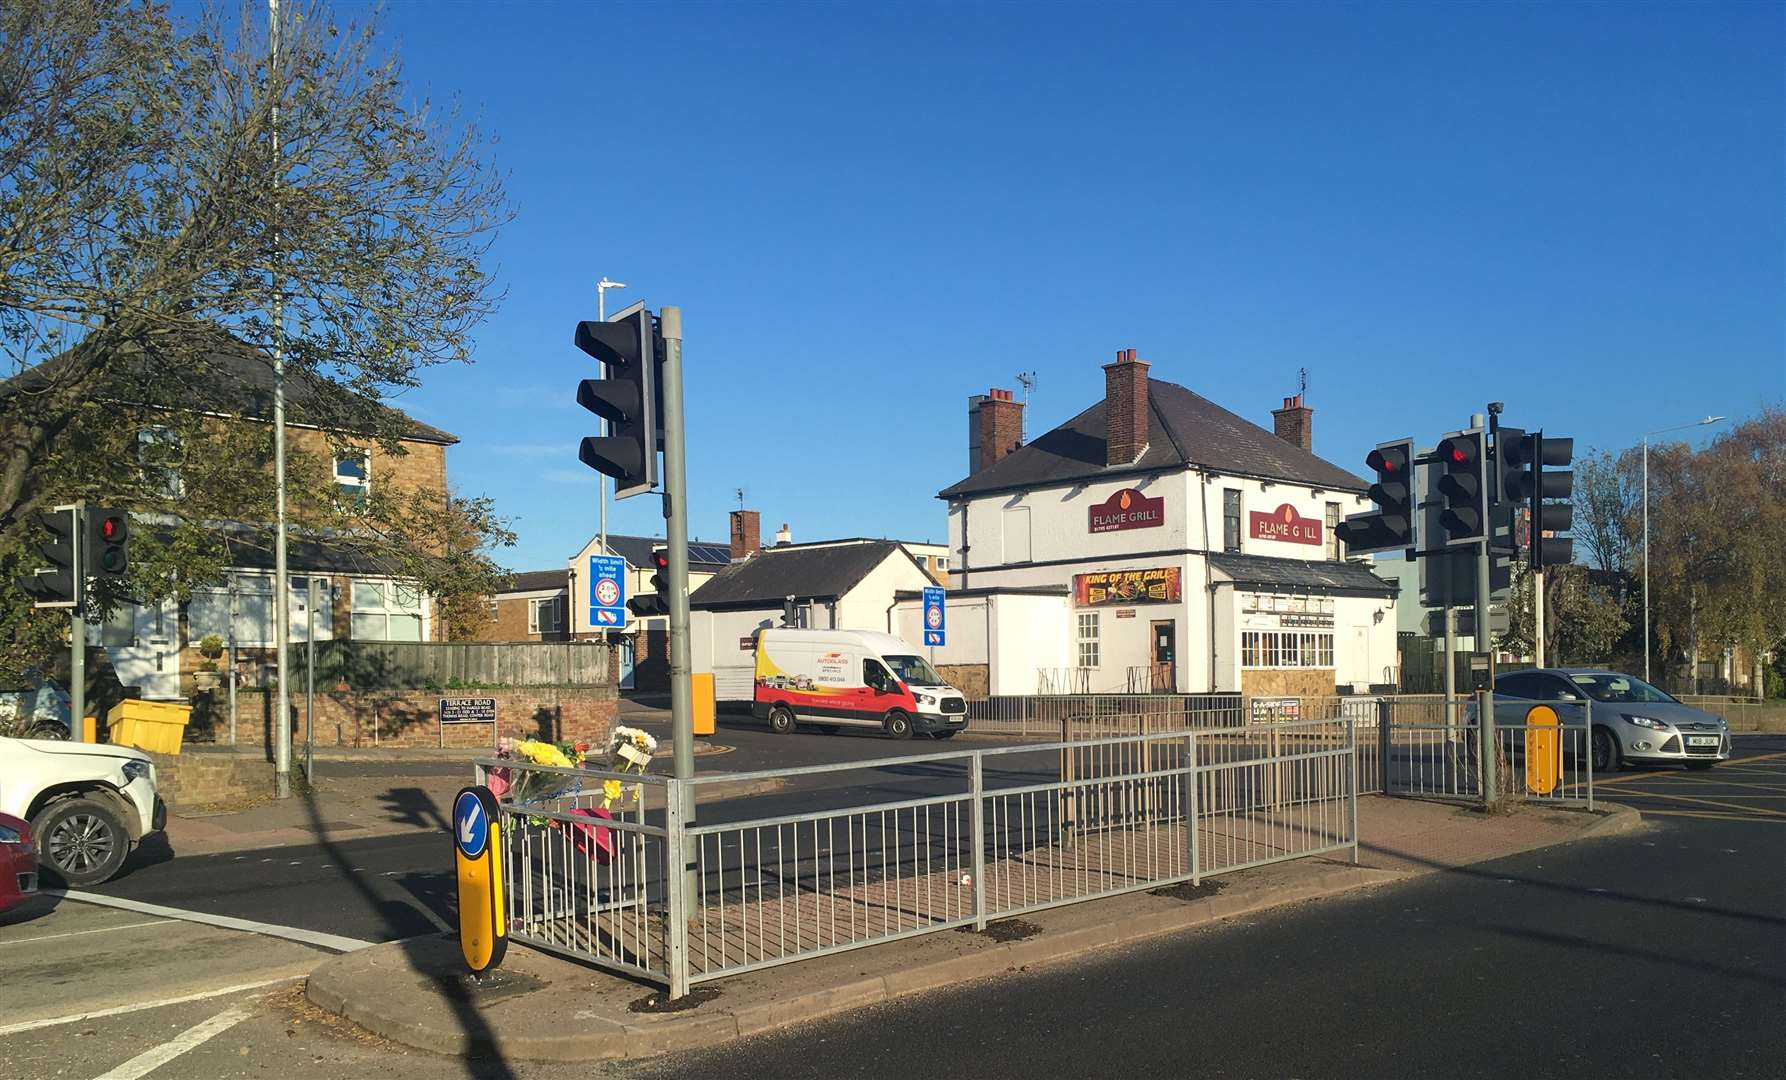 The junction where Sittingbourne schoolgirl Ellie Paine was hit by a car